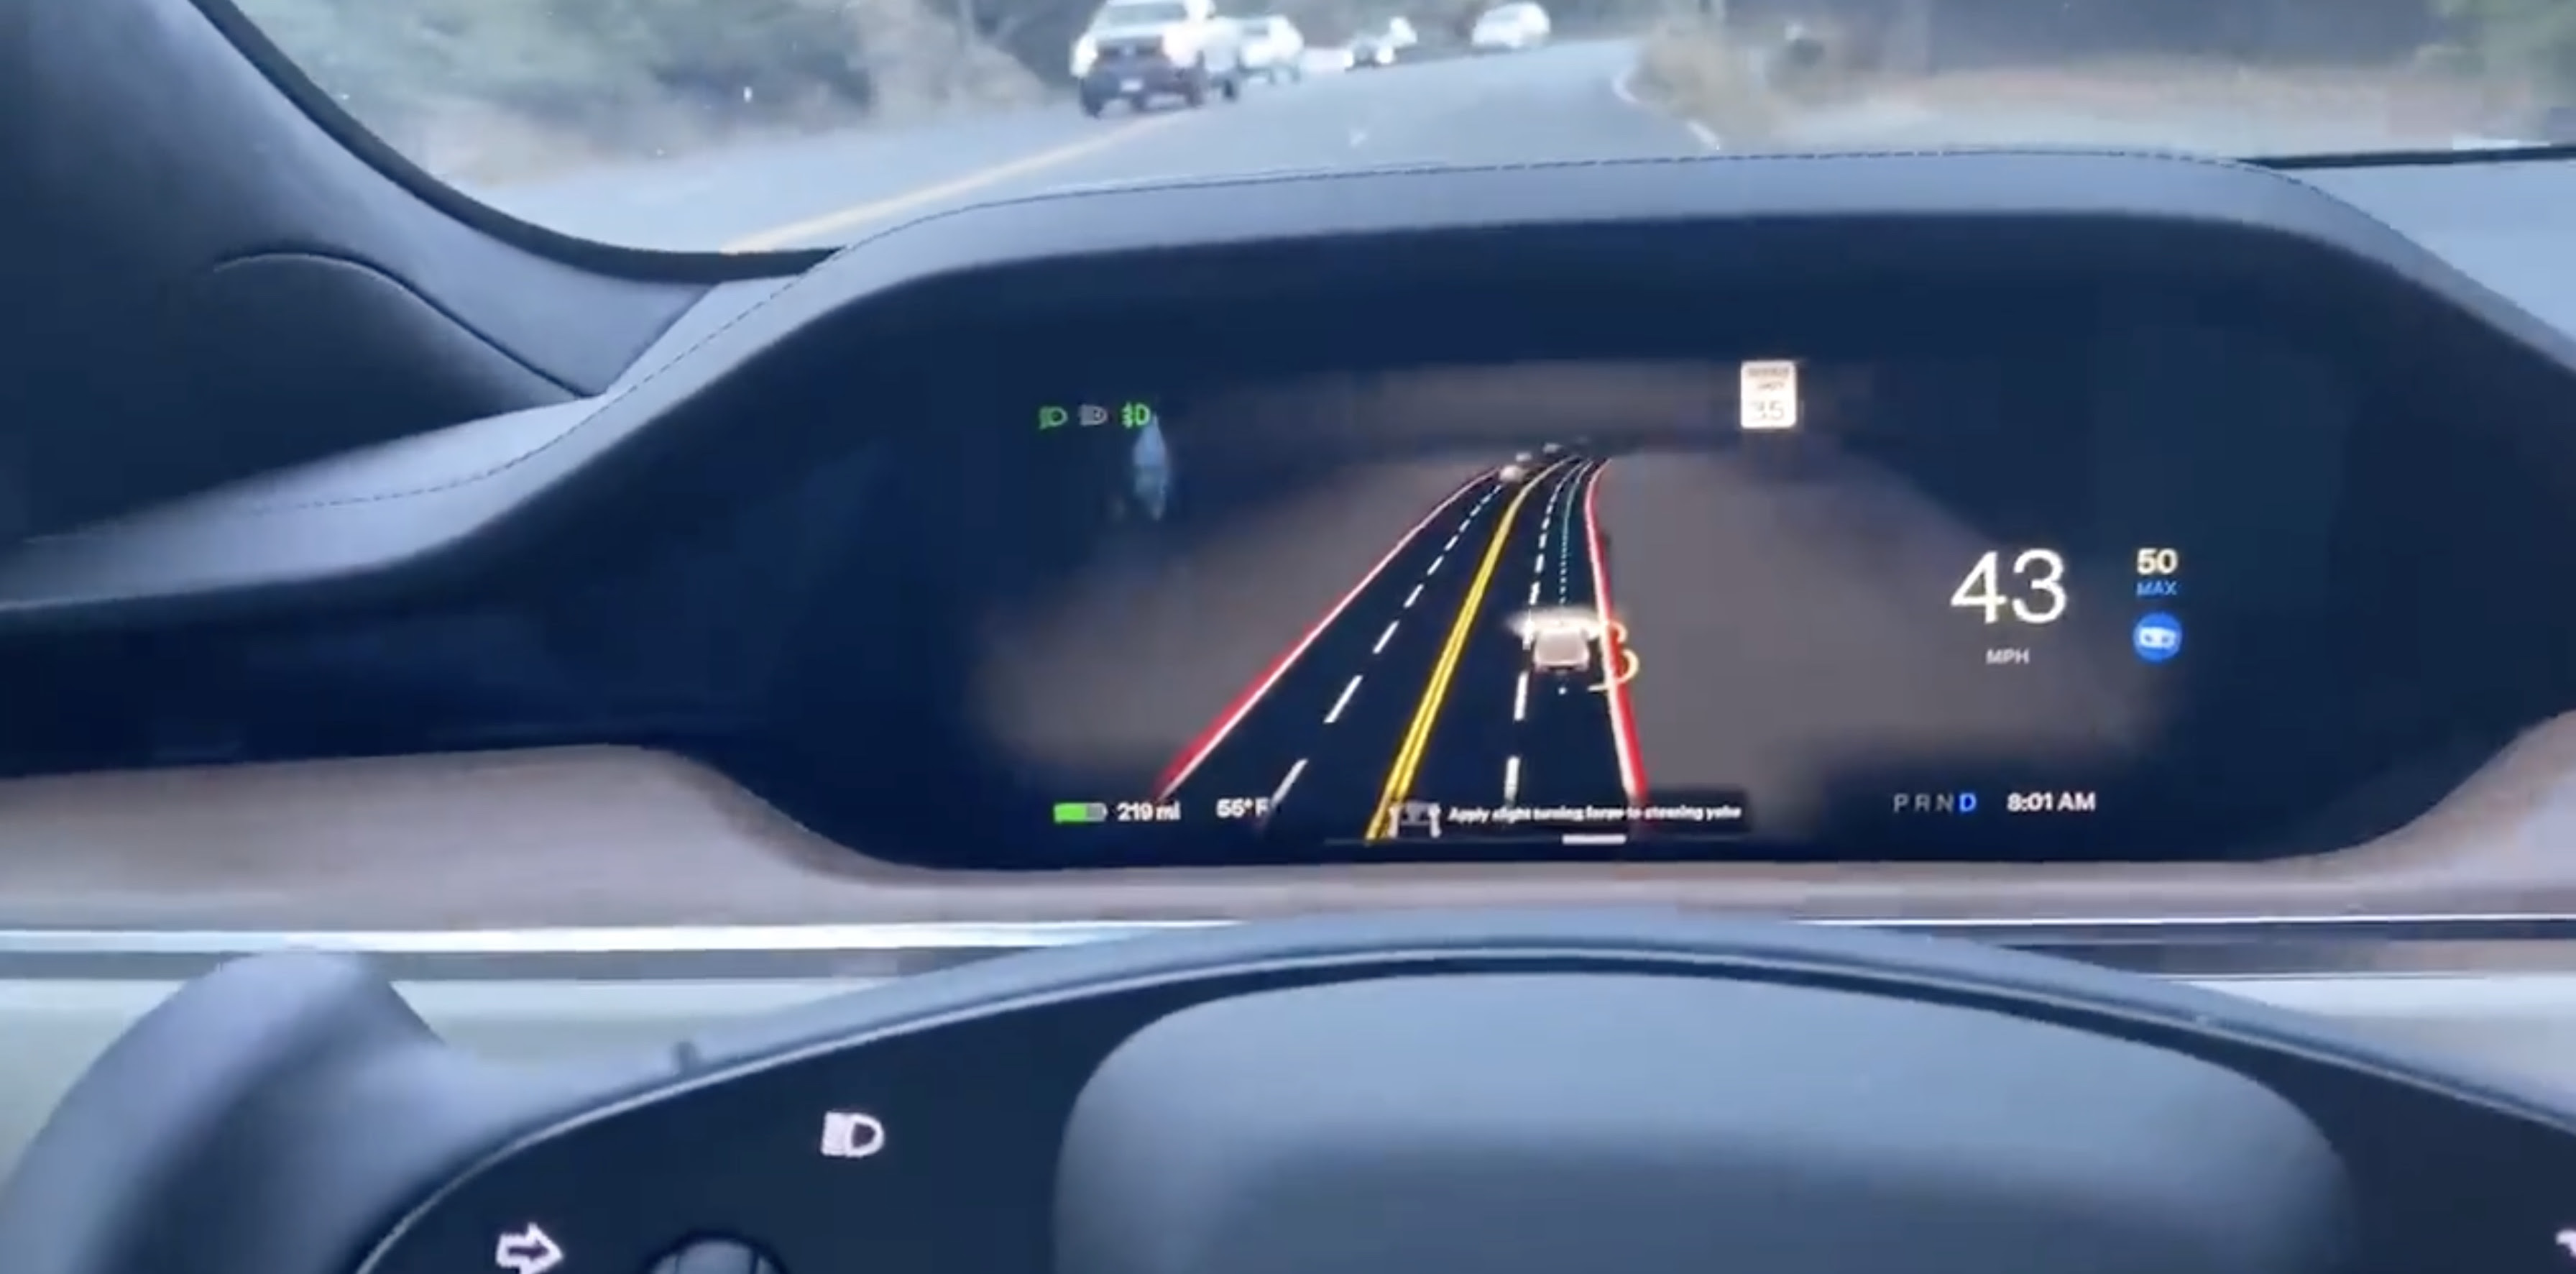 Tesla pushes 'Full Self-Driving Beta' to investor with poor 'safety score' while requiring perfect score from others